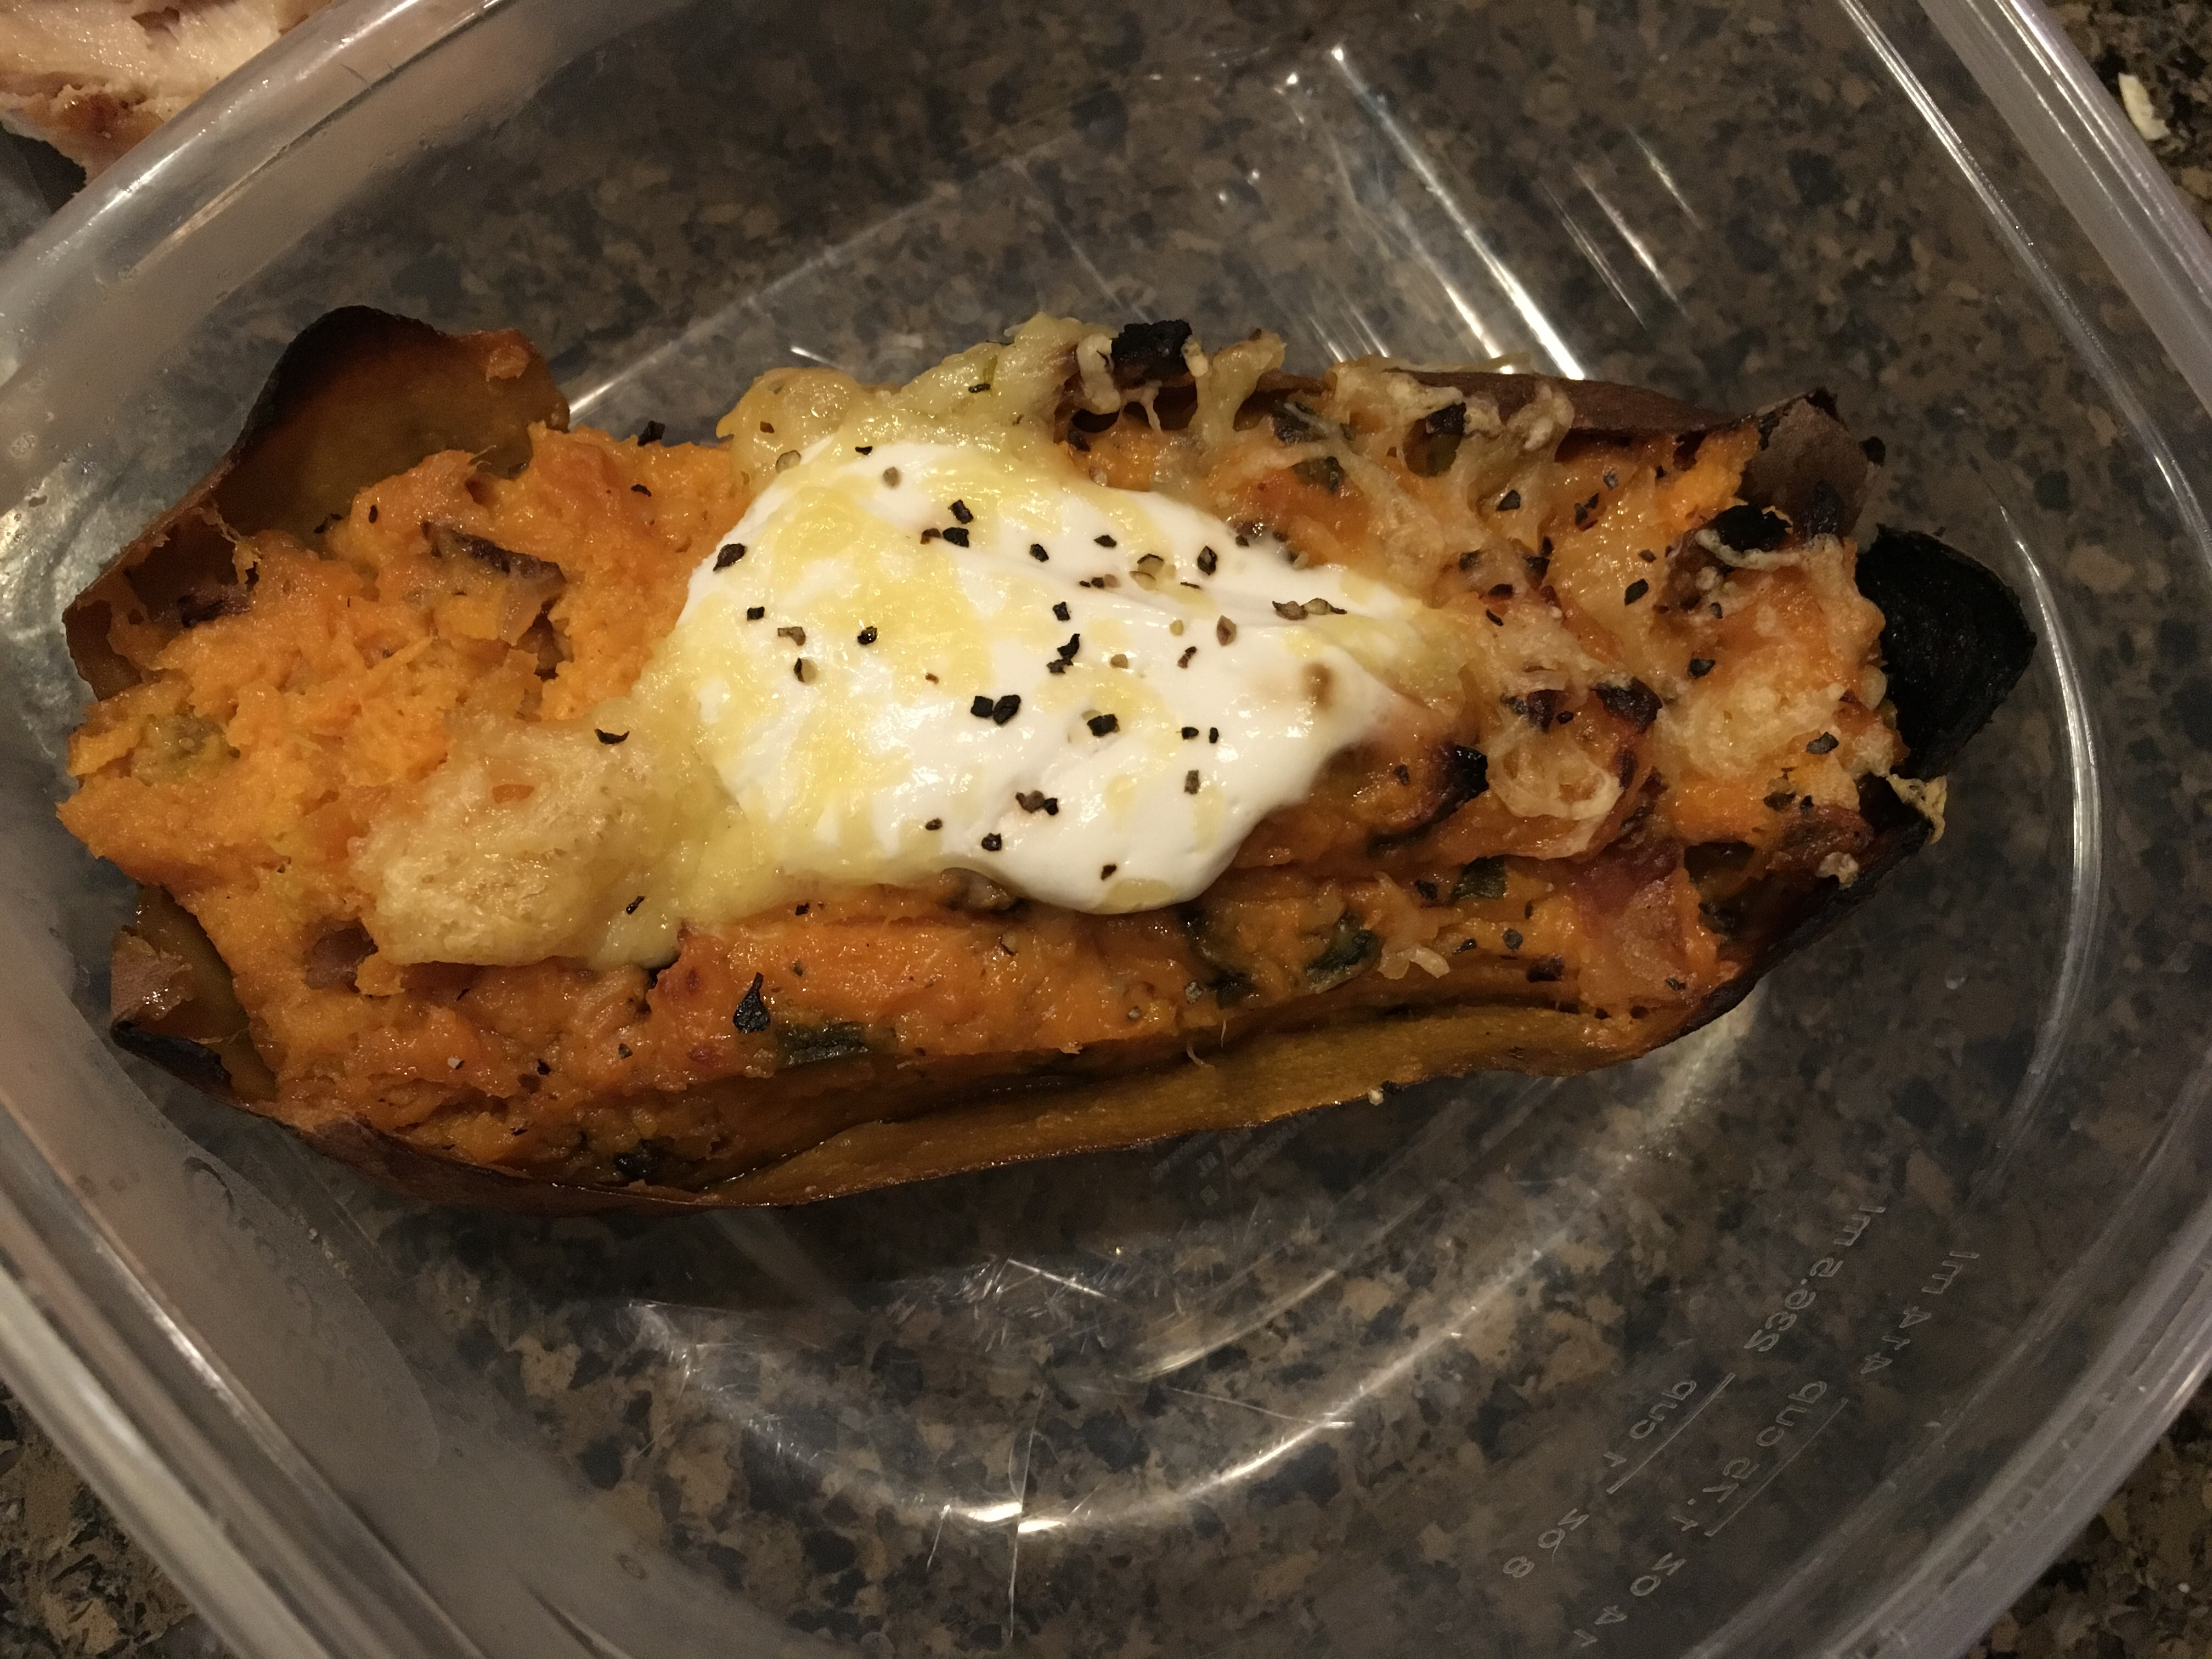 Loaded Twice-Baked Sweet Potatoes luv2cookluv2eat